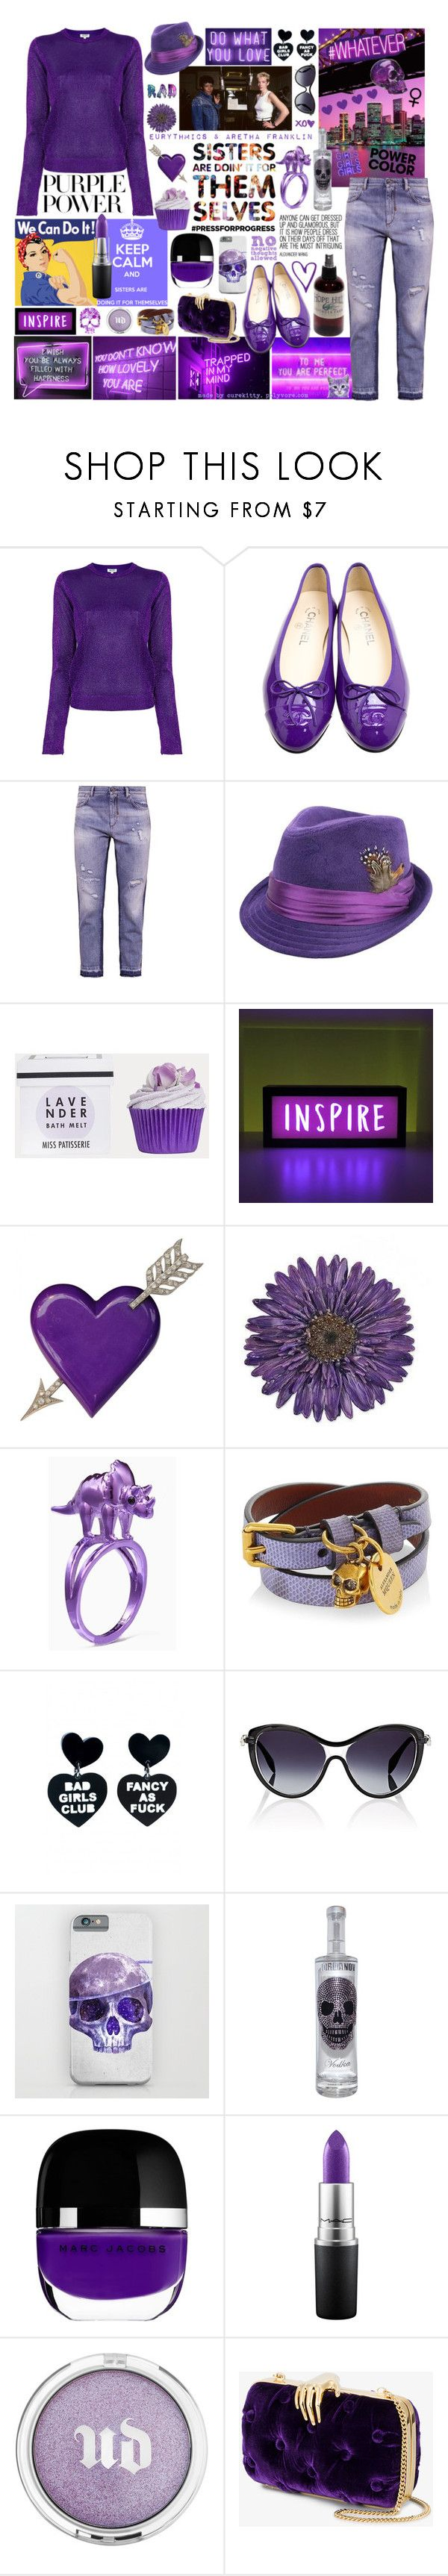 """""""Sister's Are Doin' It For Themselves!"""" by curekitty ❤ liked on Polyvore featuring Kenzo, Sportmax Code, Yves Saint Laurent, NOVICA, Kate Spade, Alexander McQueen, Marc Jacobs, MAC Cosmetics, Urban Decay and Benedetta Bruzziches"""